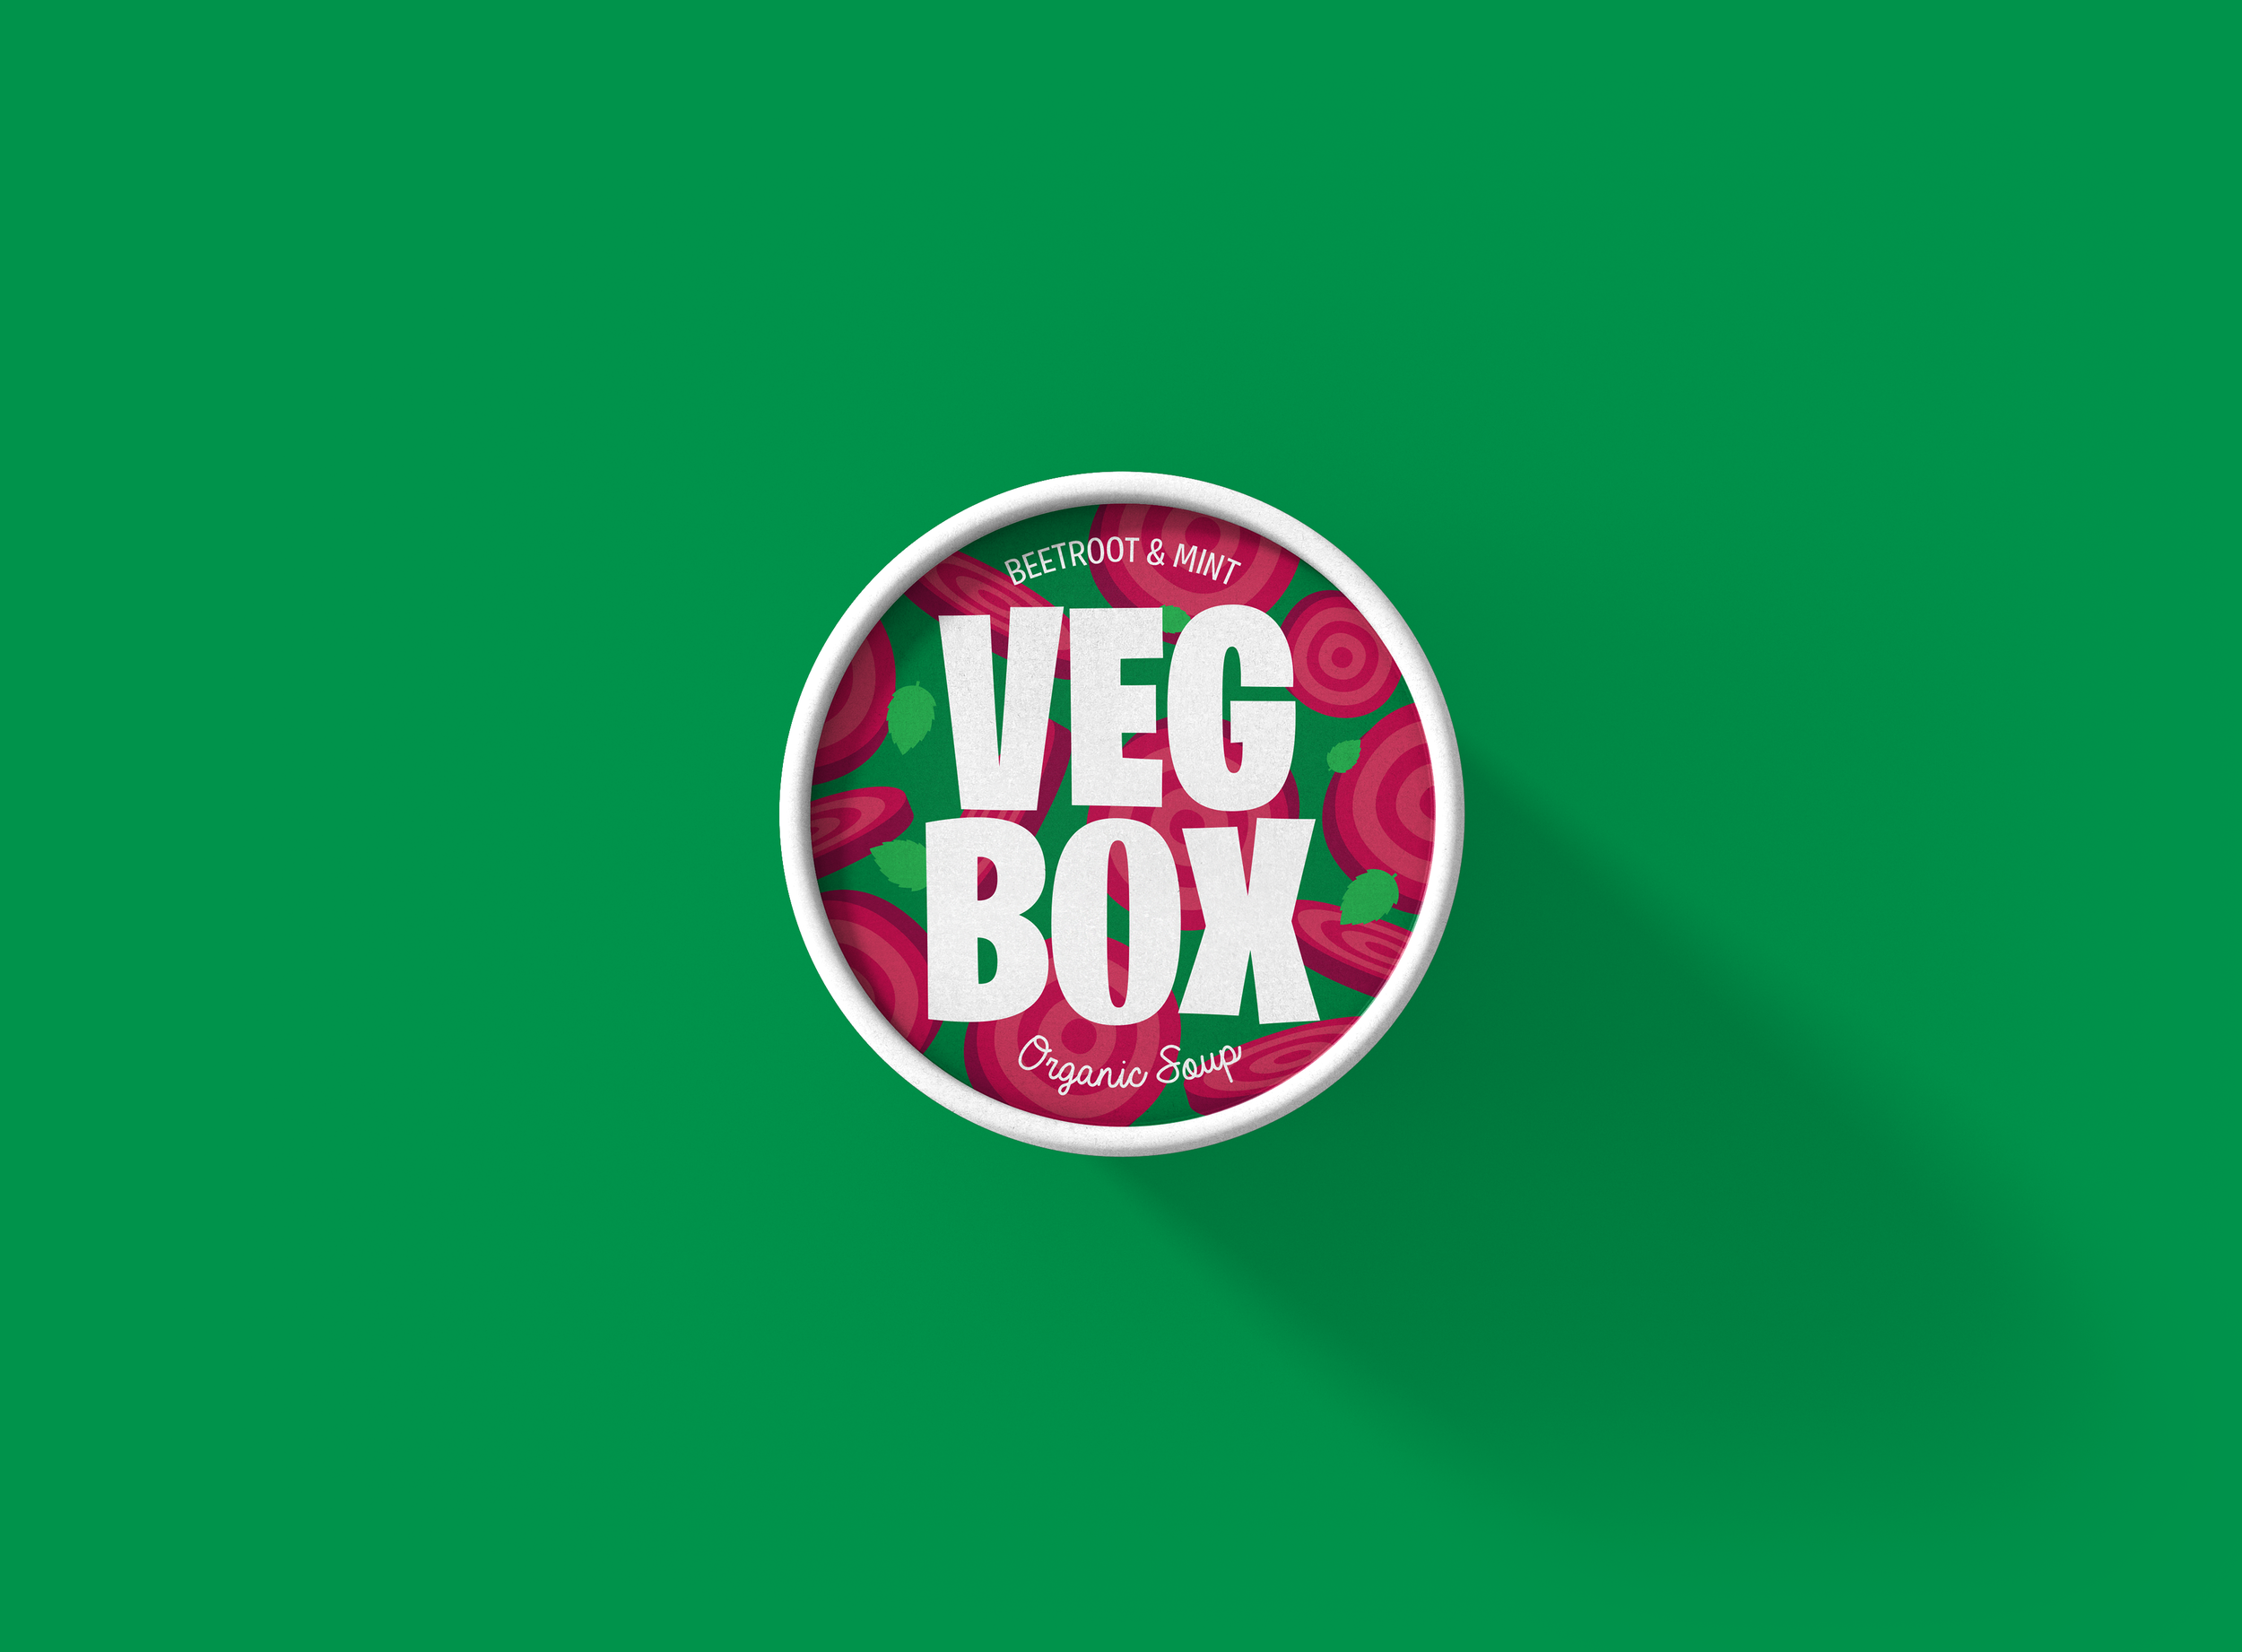 Veg Box Packaging Design for an Independent Organic Soup Brand Made in Italy / World Brand & Packaging Design Society